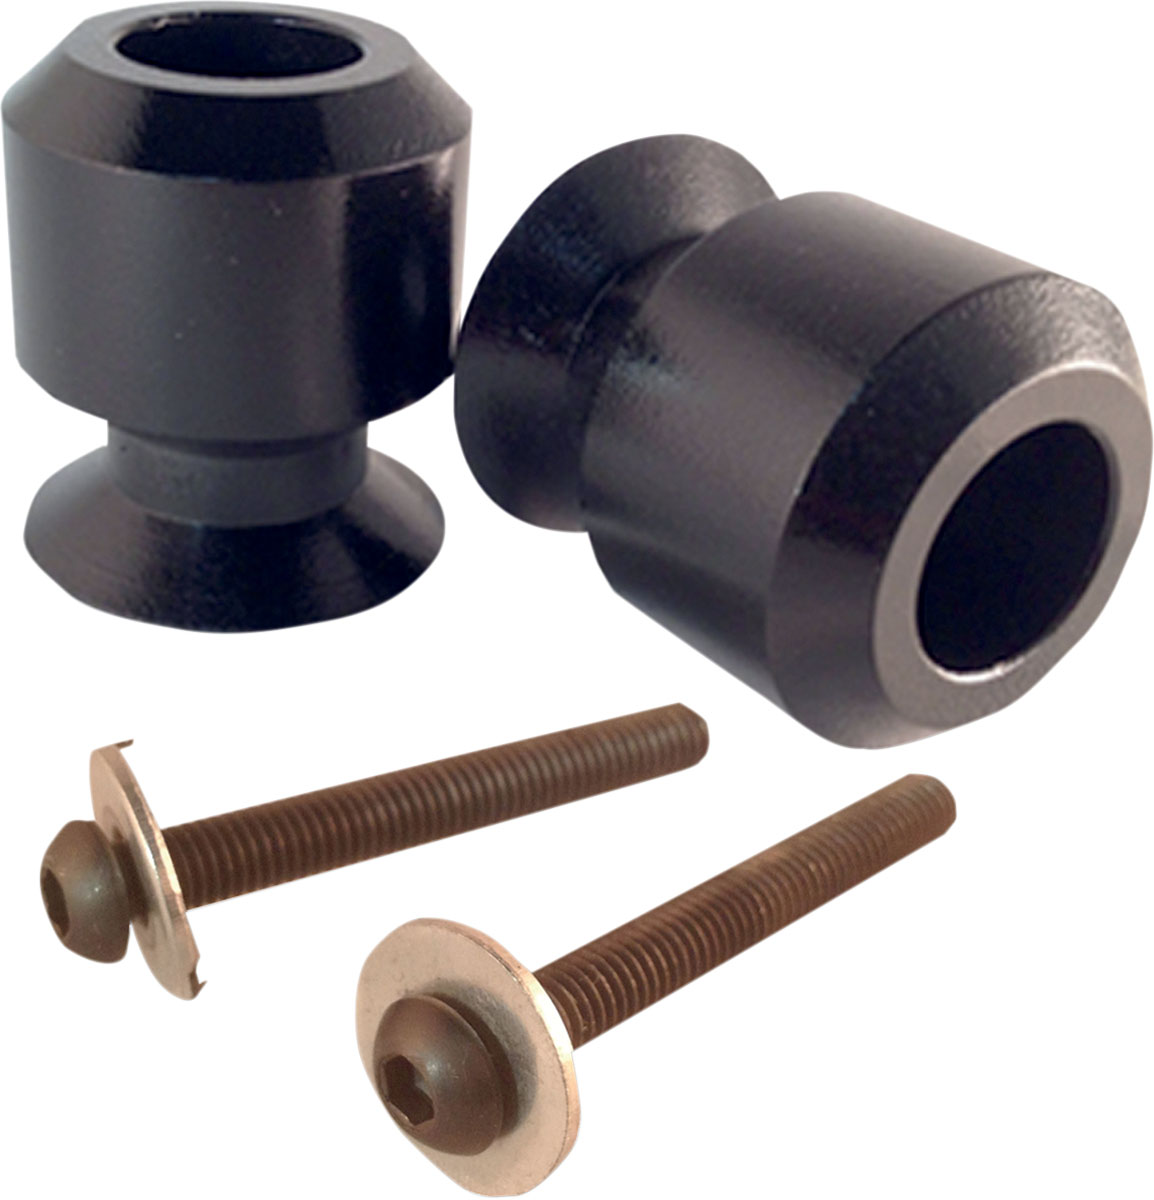 PSR Swingarm Sliders Spools (Black) 00-01922-02